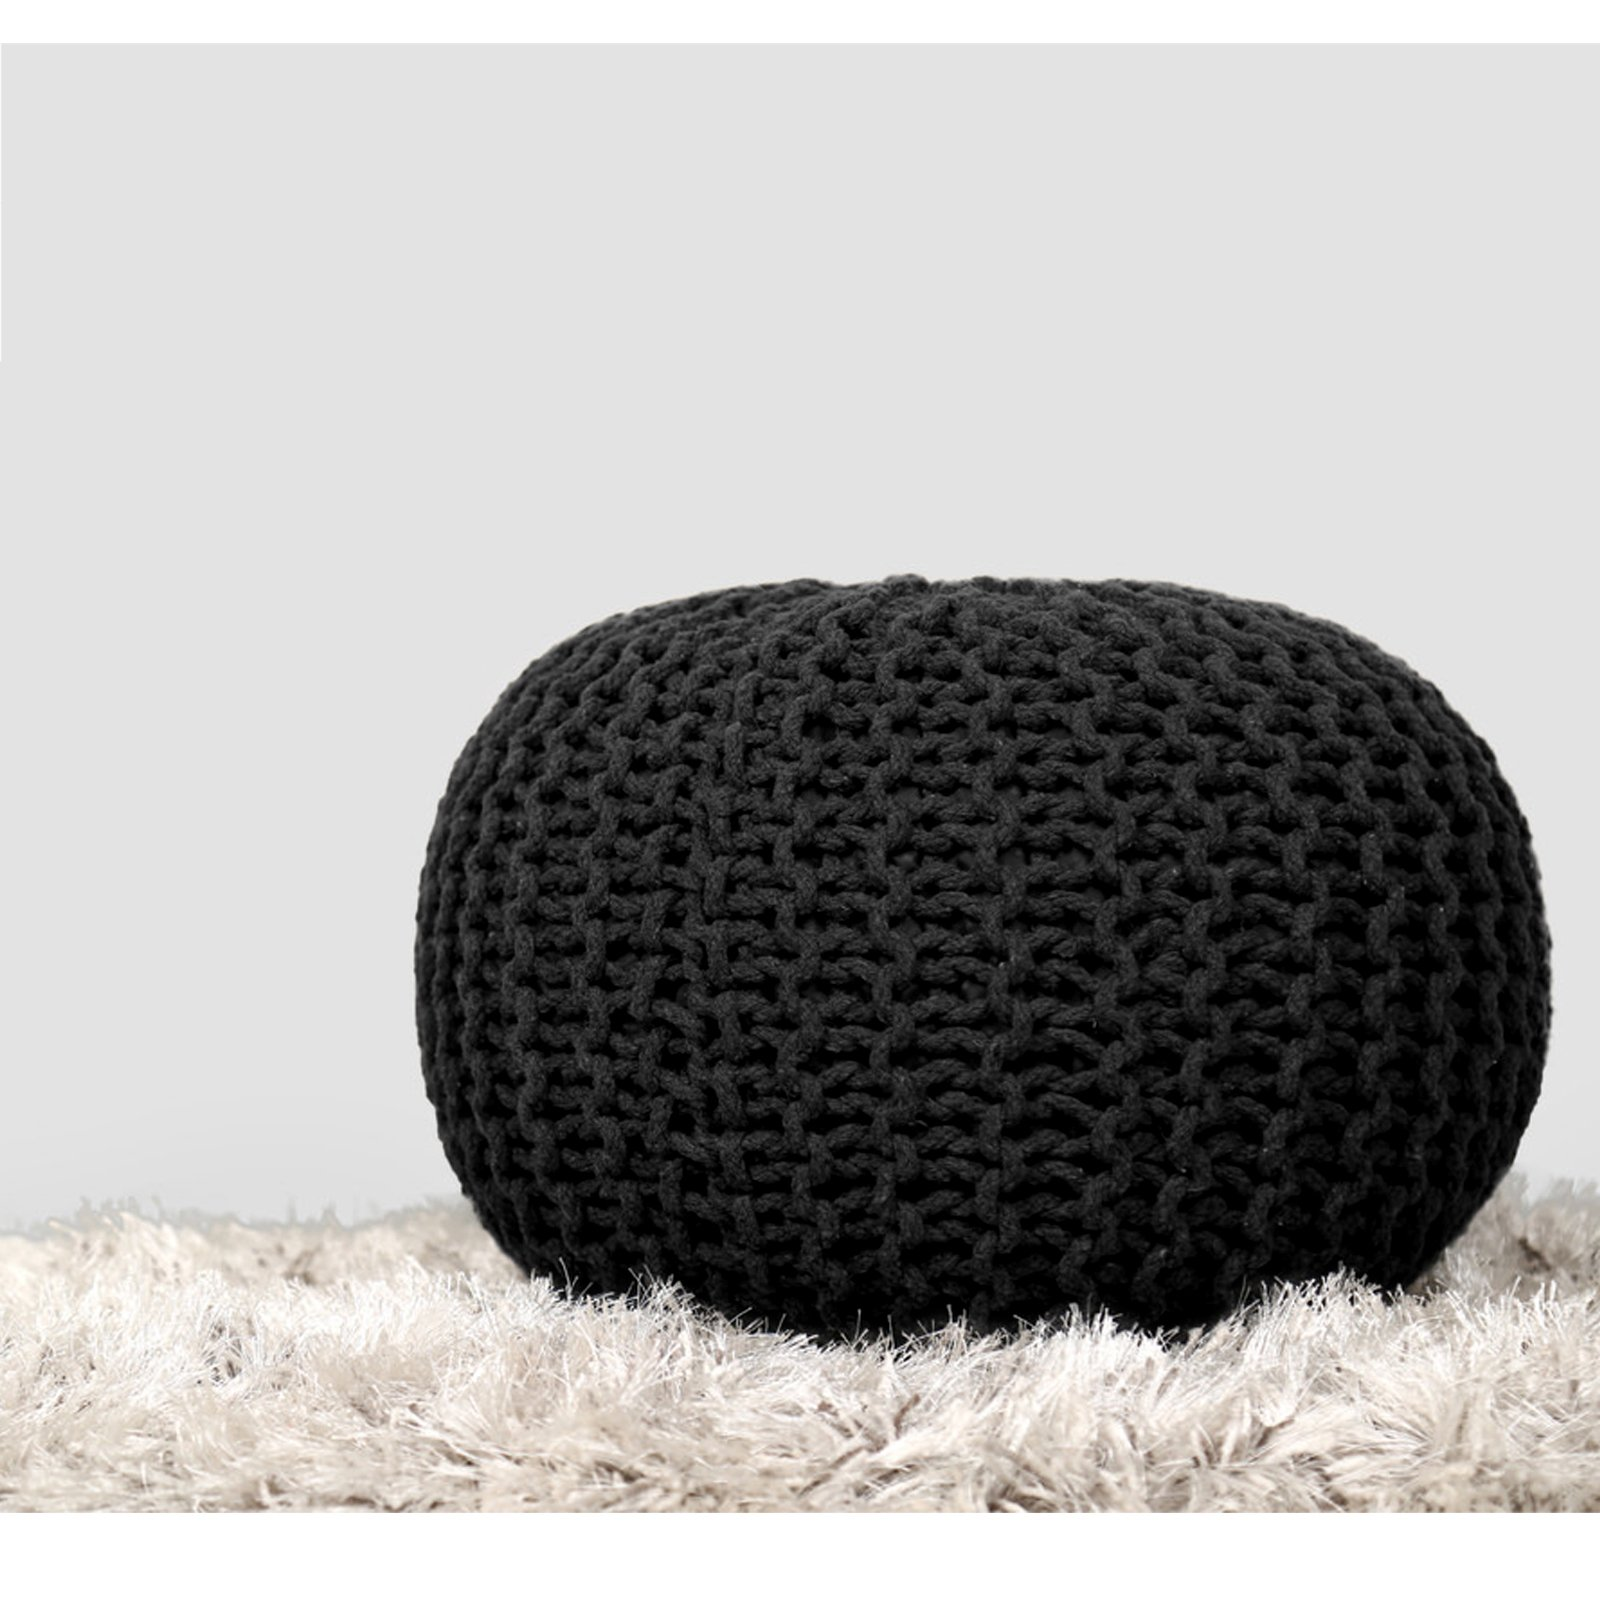 RAJRANG Hand Knit Pure Cotton Pouf - Black Braid Cord Stitched Round Ottoman Foot Stool Home Decorative Seat for Guests by RAJRANG